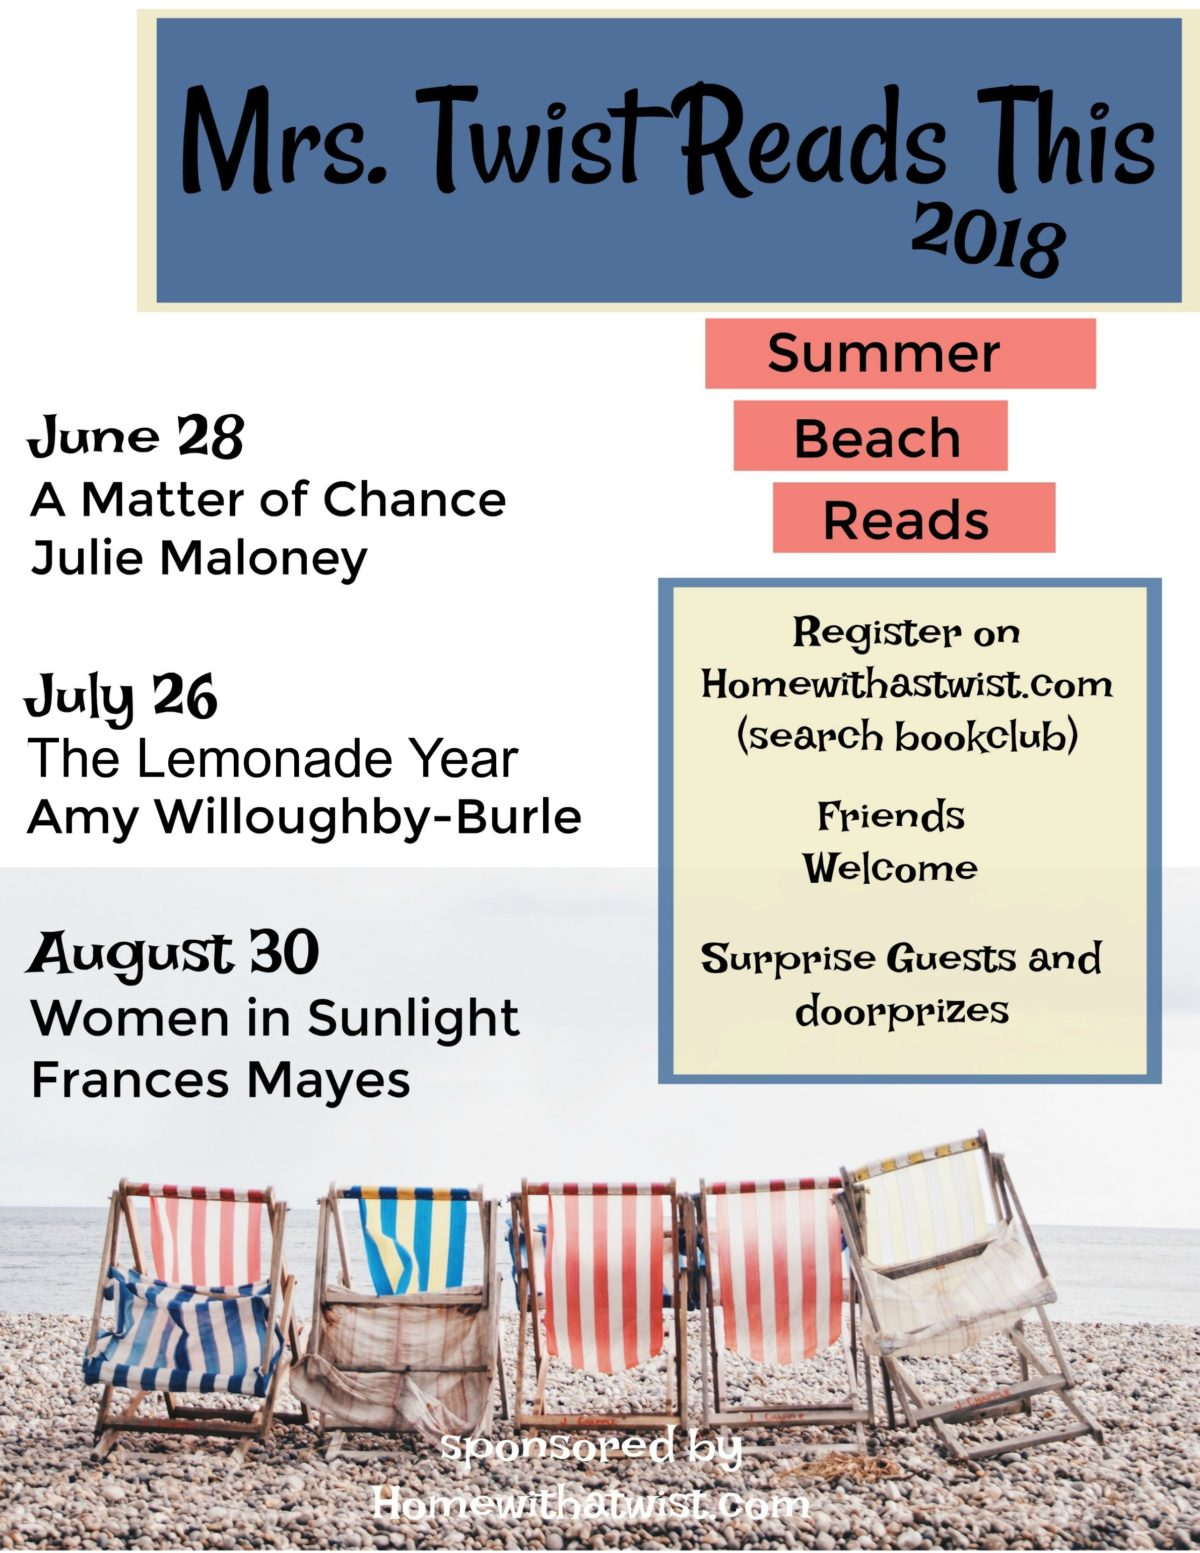 Mrs. Twist Reads This Summer Beach Reads 2018